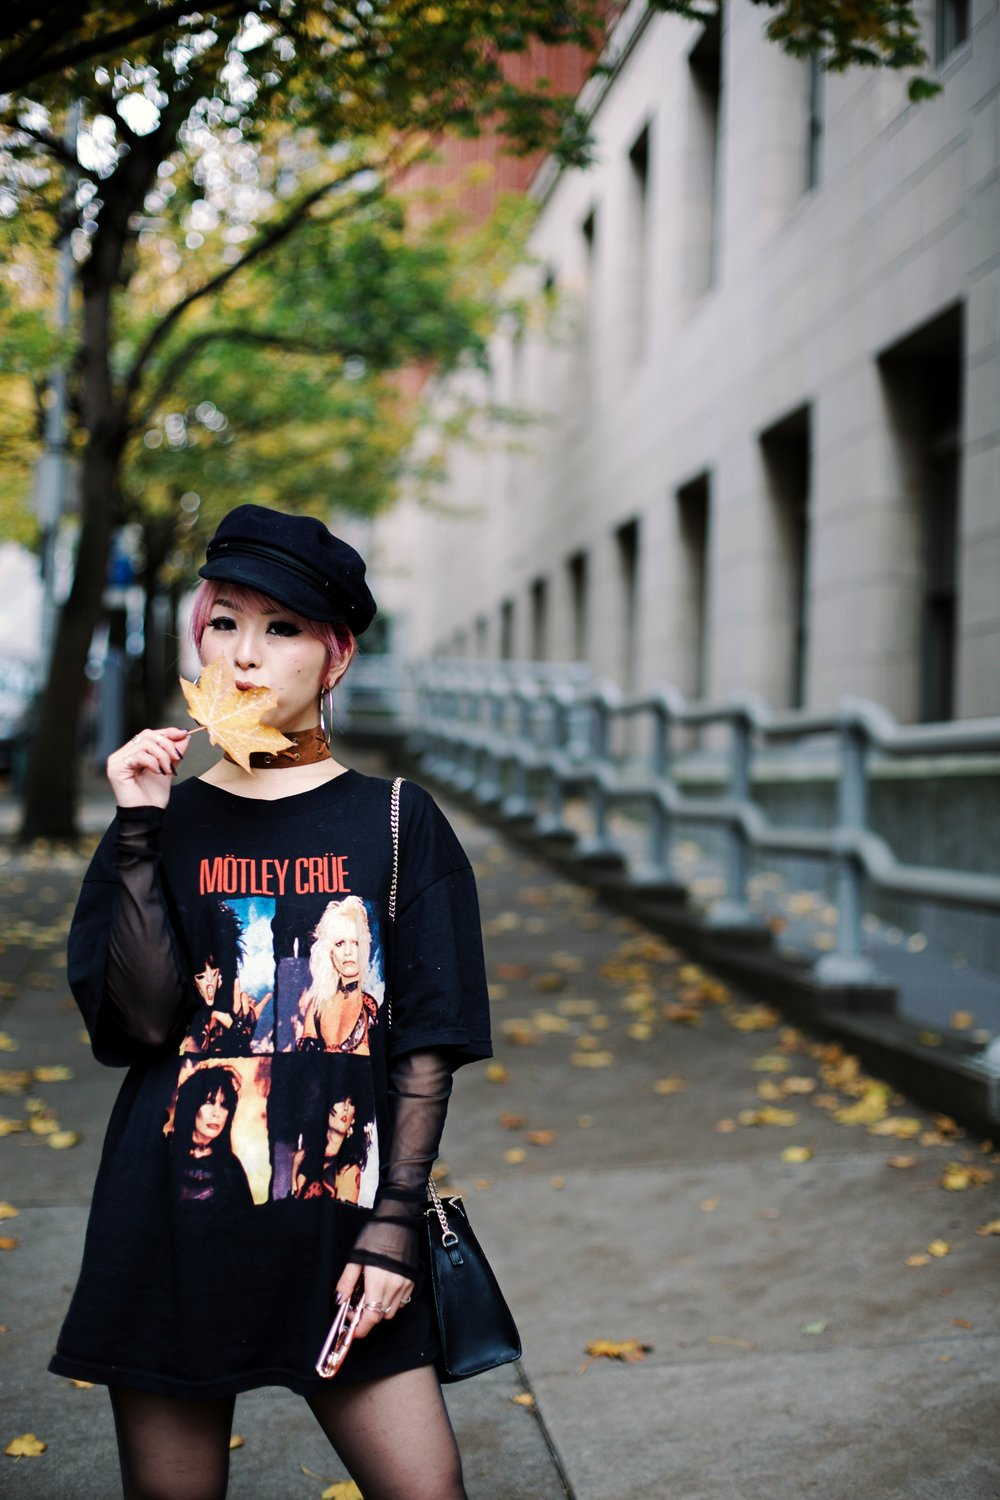 Isabel Marant Hat-Forever 21 hoop earrings-Free People Double Crossed Suede Choker-Vintage Rock T-shirt-Zara sheer top & EMBROIDERED CLUTCH-Aika's love Closet-Seattle Fashion Blogger-Japanese-Pink hair-Colored Hair 6